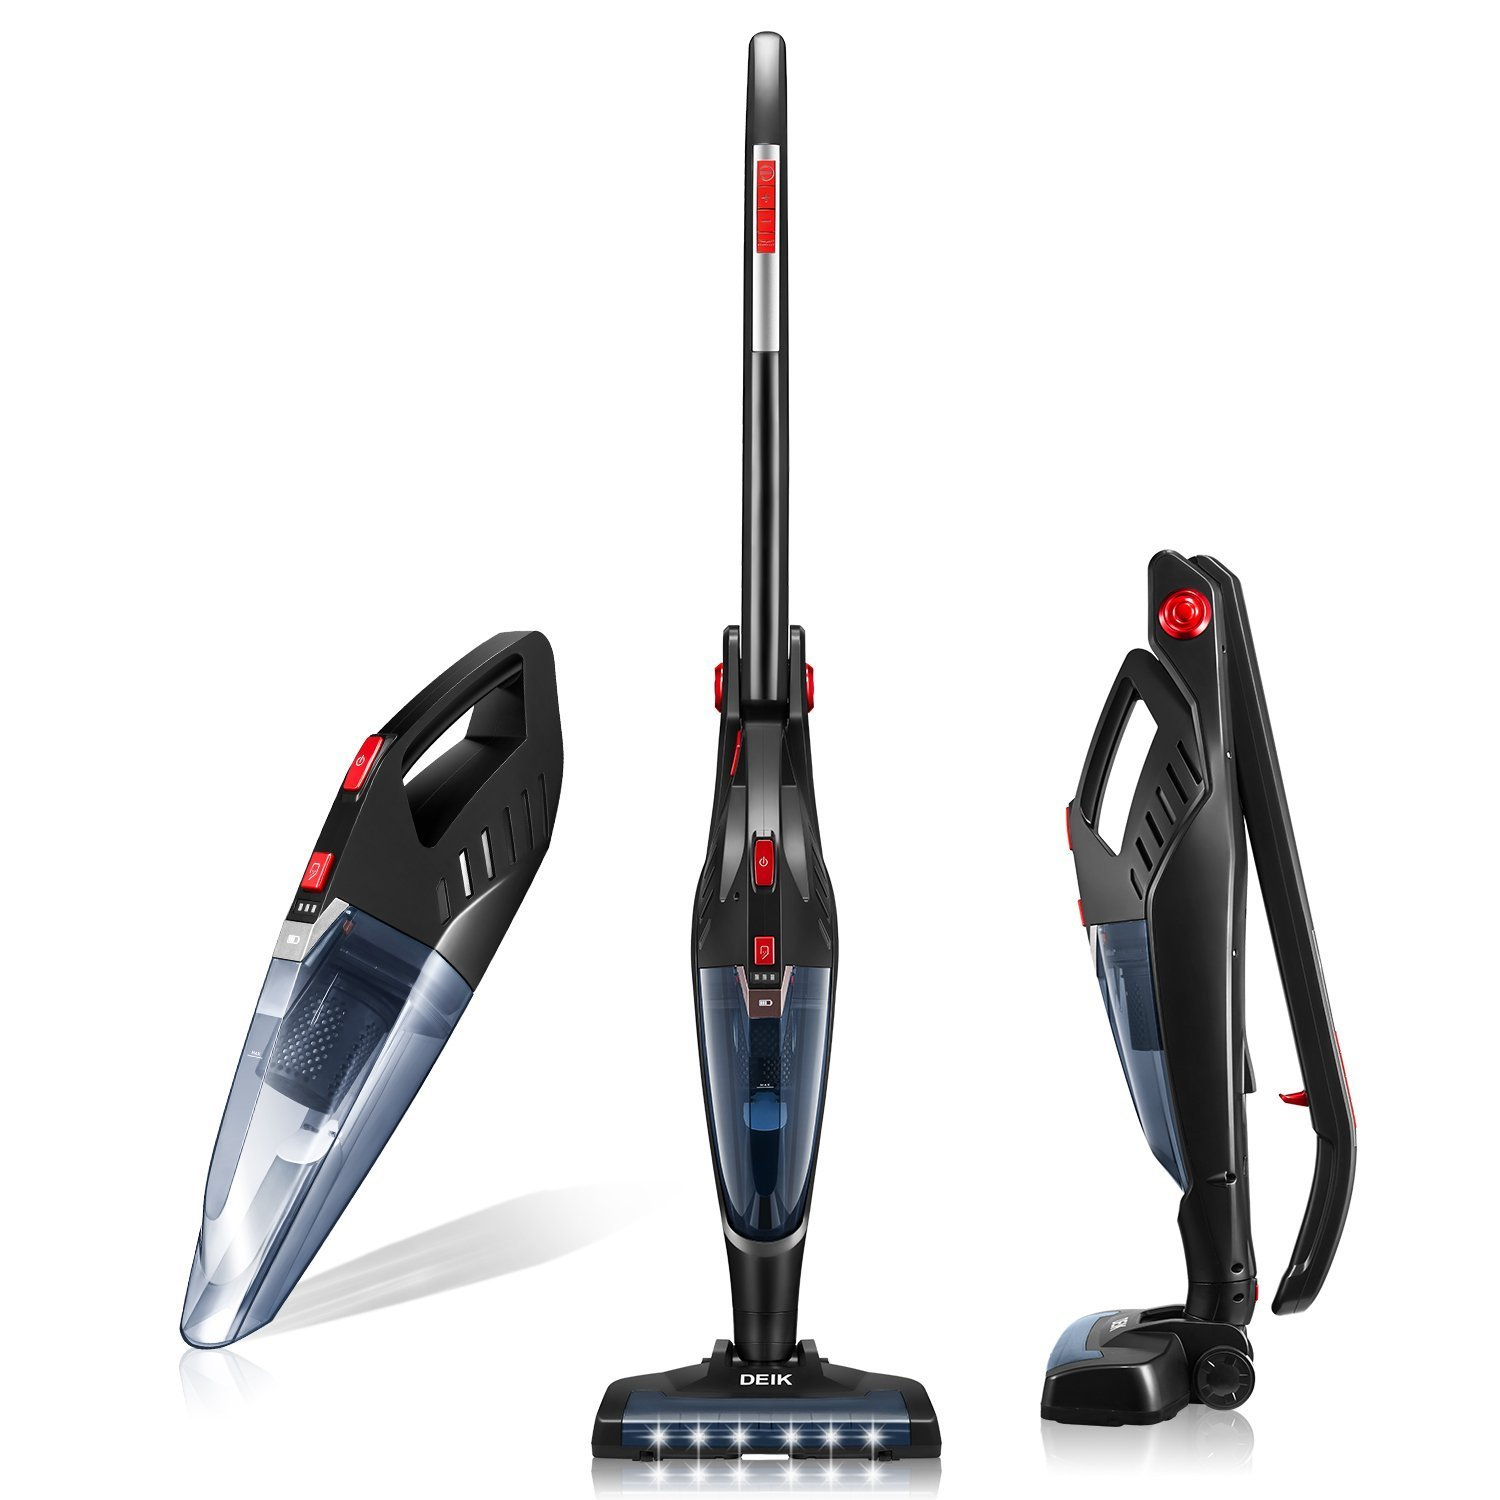 Deik Cordless Vacuum Cleaner, 2 in 1 Vacuum Cleaner with HEPA Filter, 8000PA Lightweight Rechargeable Bagless Stick and Handheld Vacuum with Upright Charging Base and LED Headlight for pet hair, Black